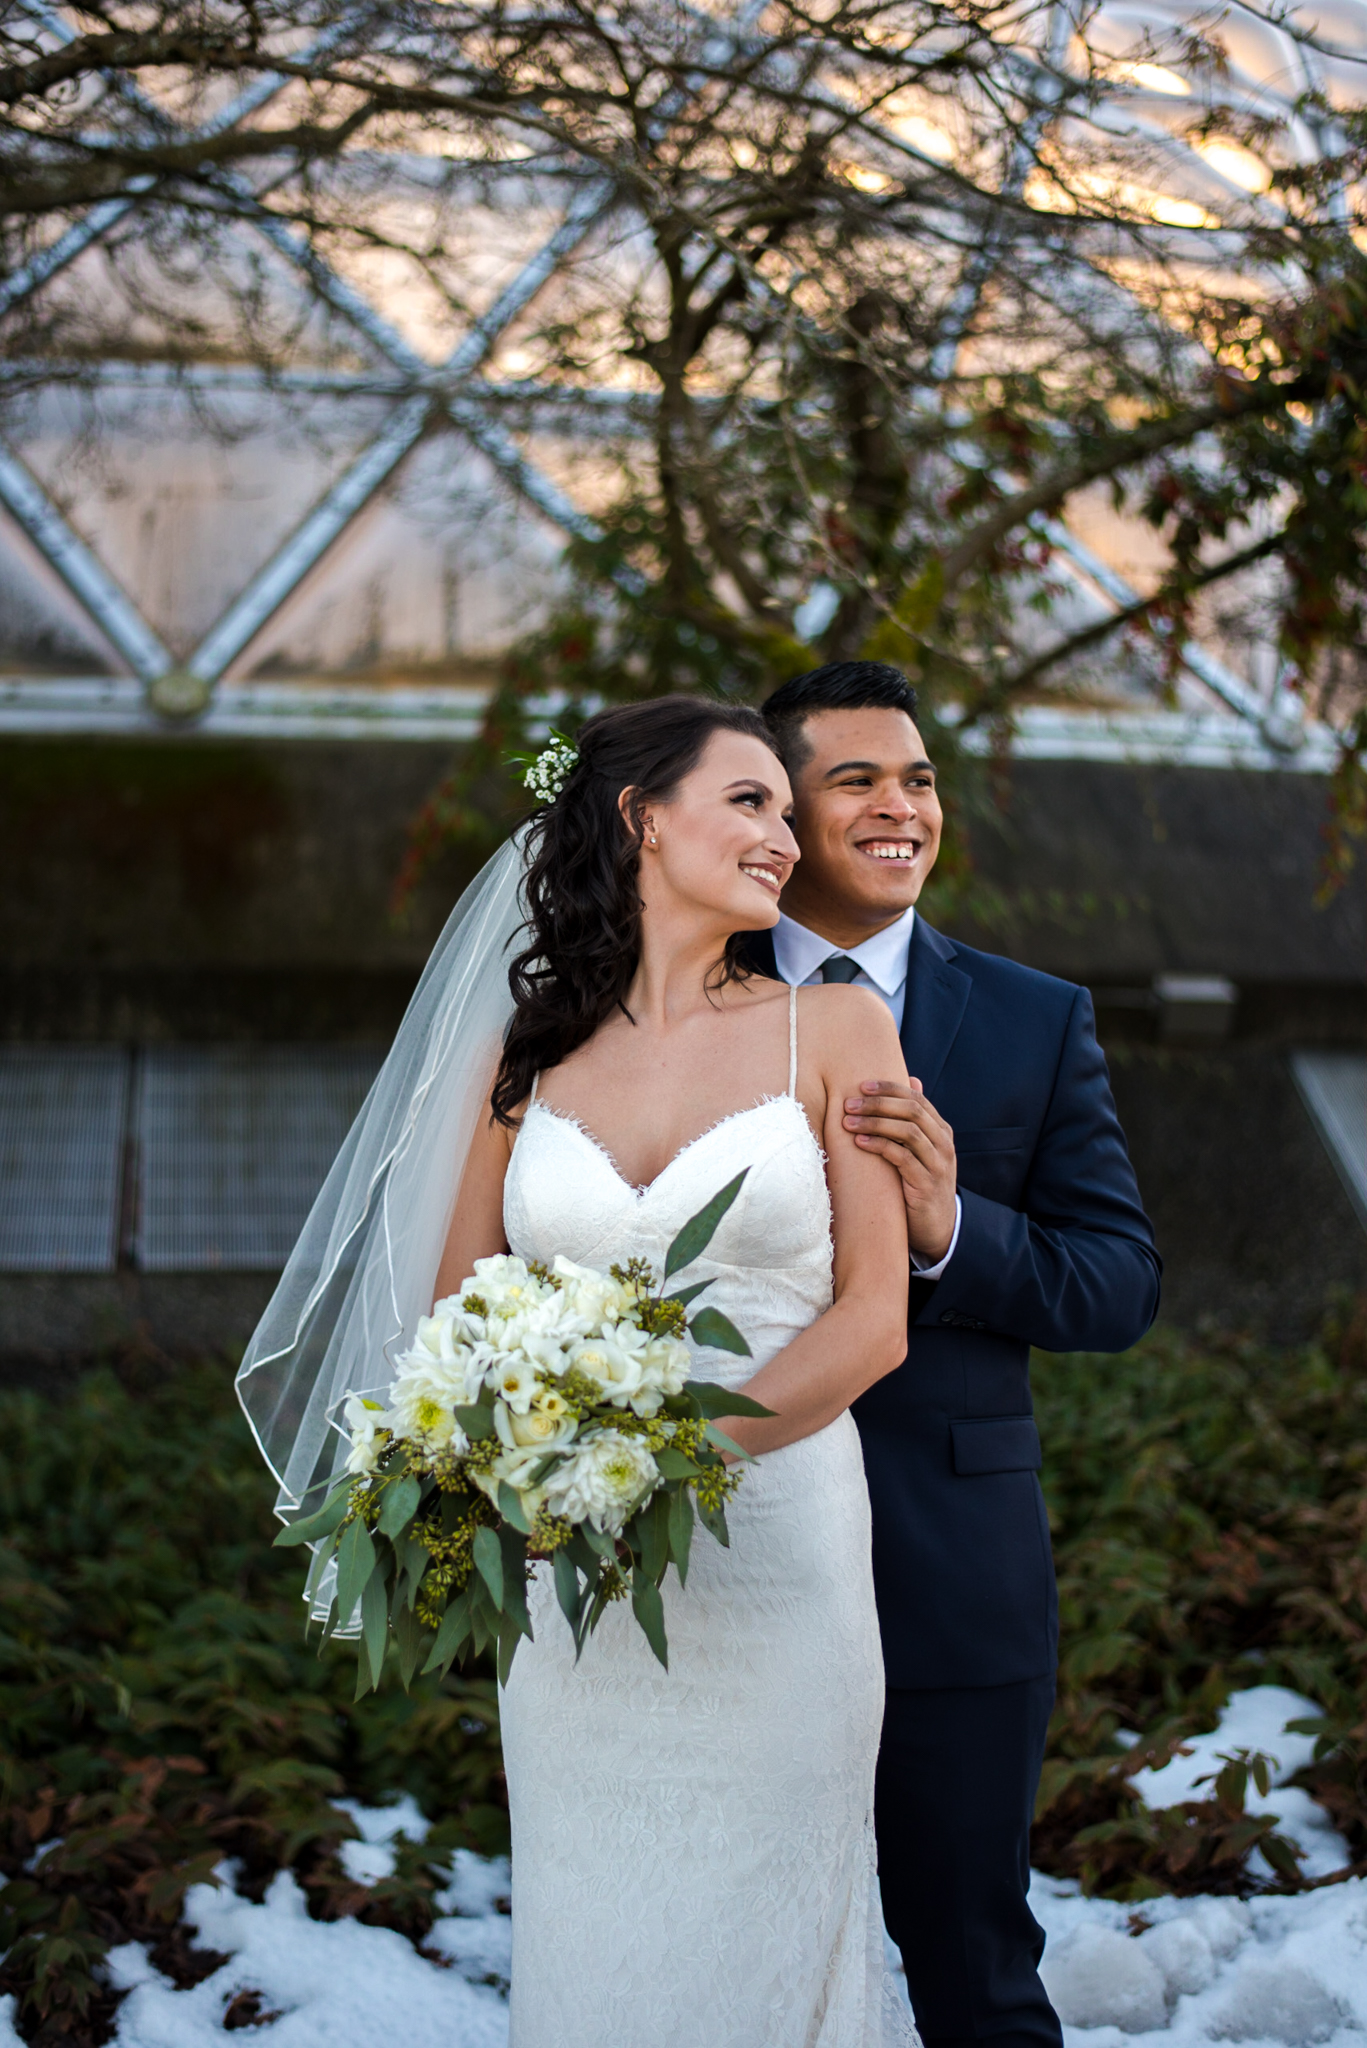 Queen Elizabeth Park Wedding Photographer-18.jpg